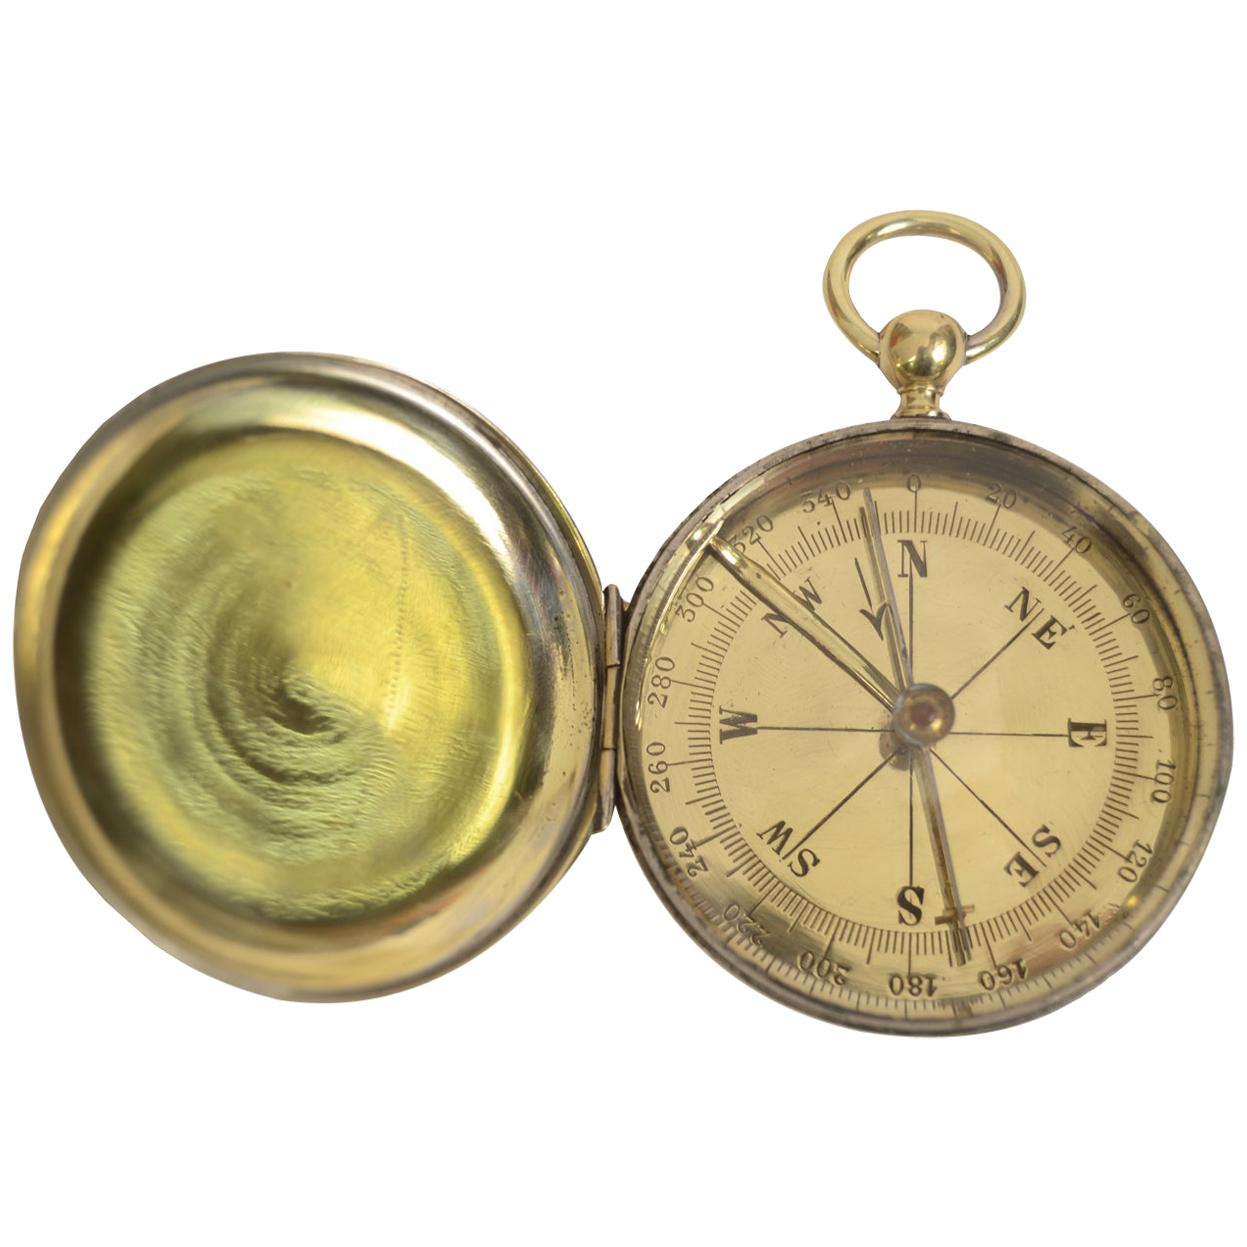 Pocket Compass English, Manufacture 1920s